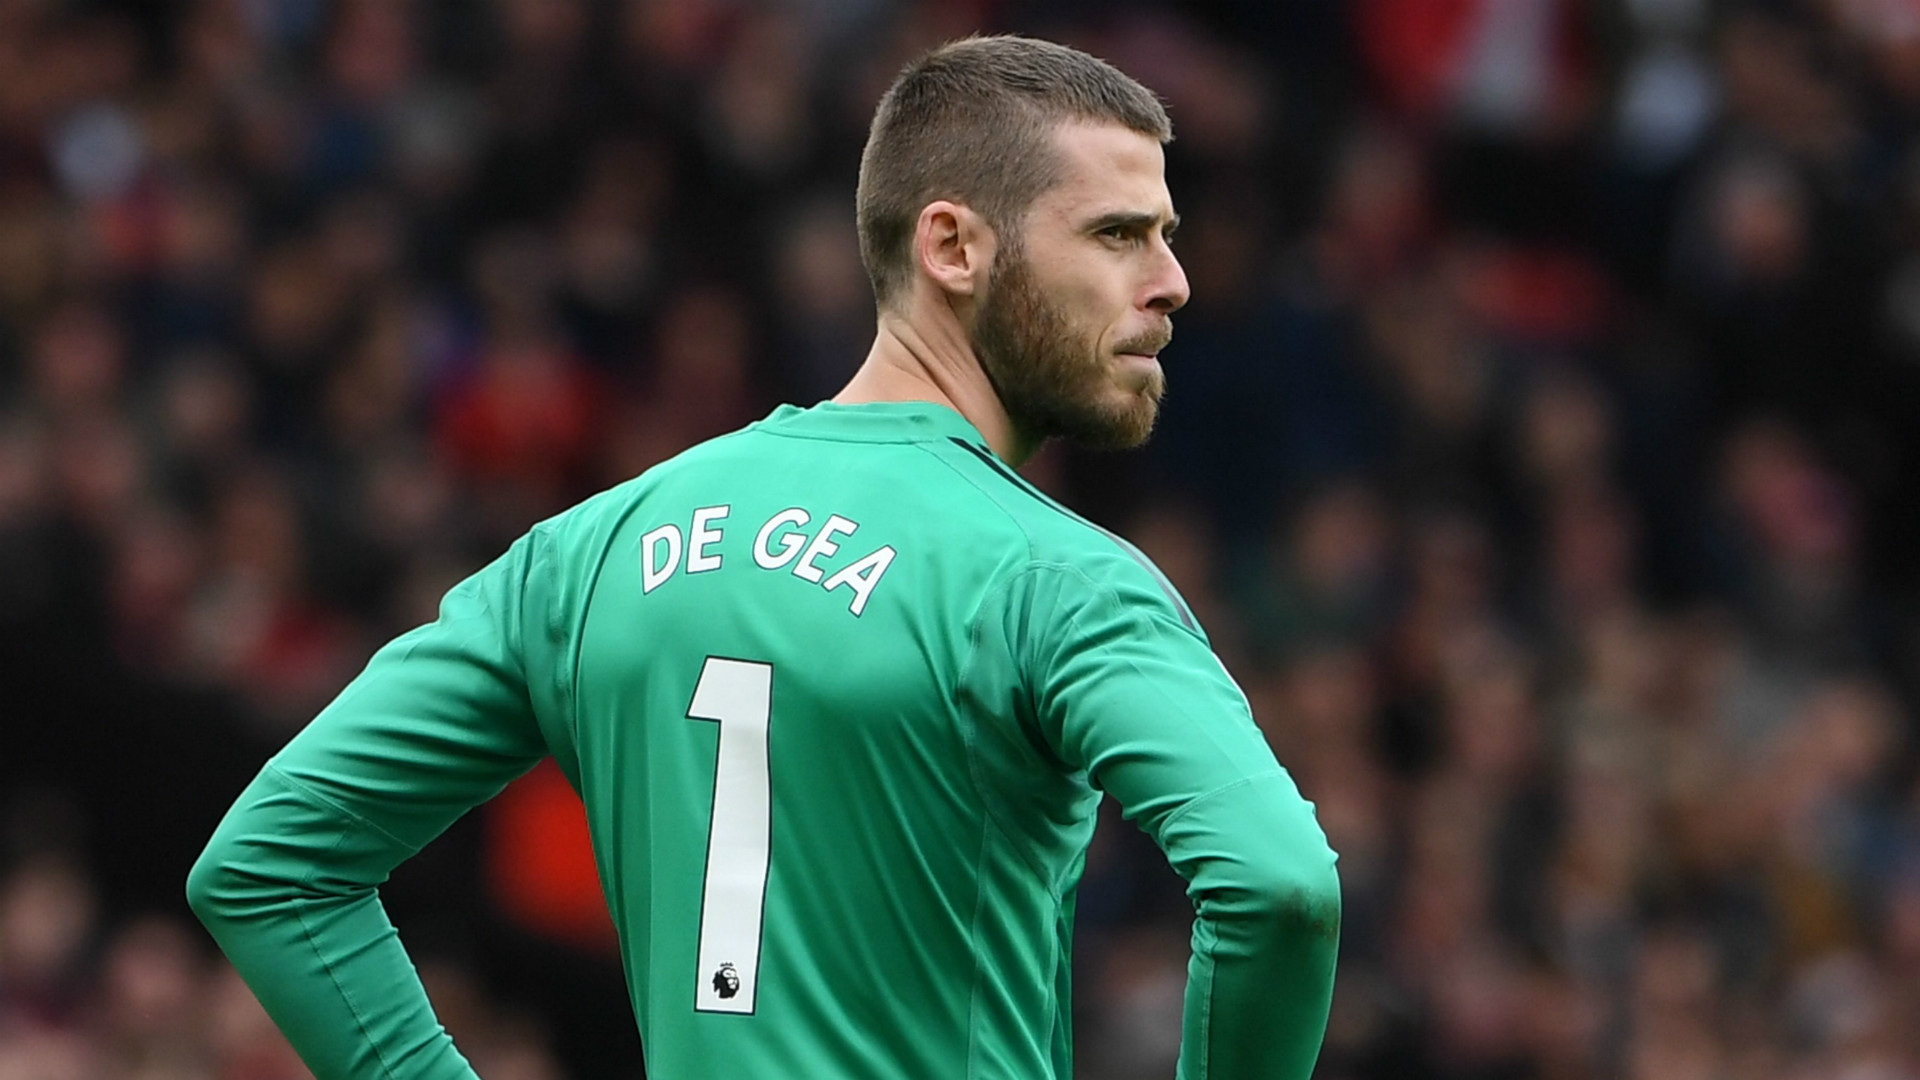 Ole Gunnar Solskjær backs De Gea despite goalkeeper's latest error